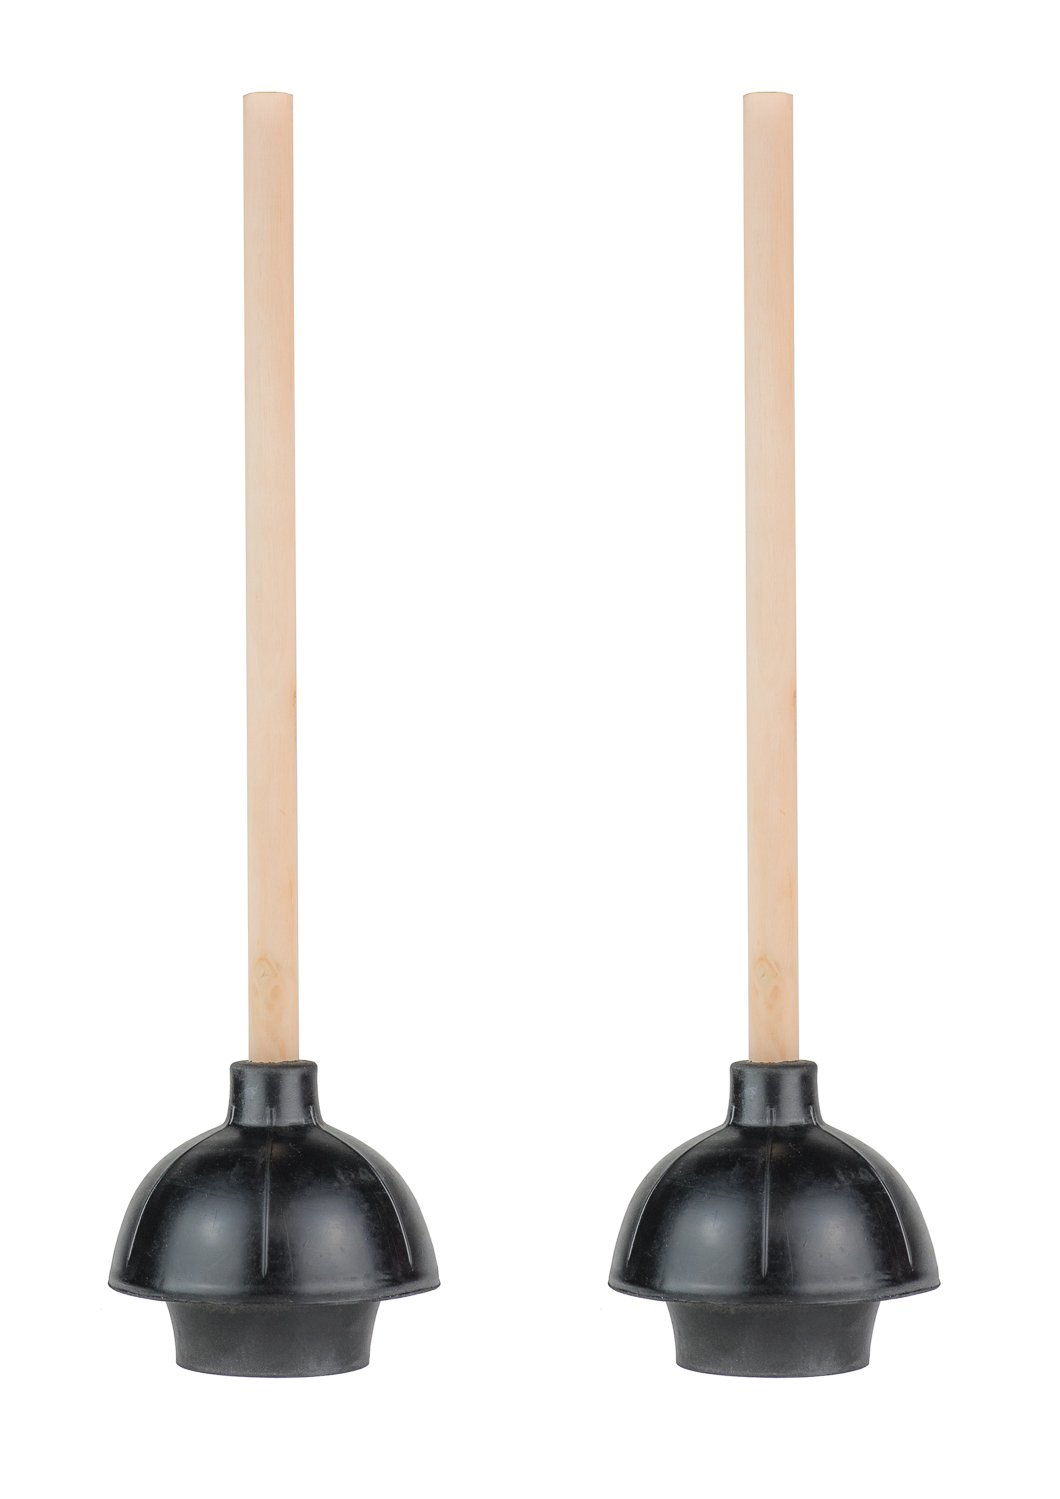 "SteadMax Rubber Toilet Plunger, Double Thrust Force Cup, Heavy Duty, Commercial Grade with 18"" Wood Handle (Pack of 2)"